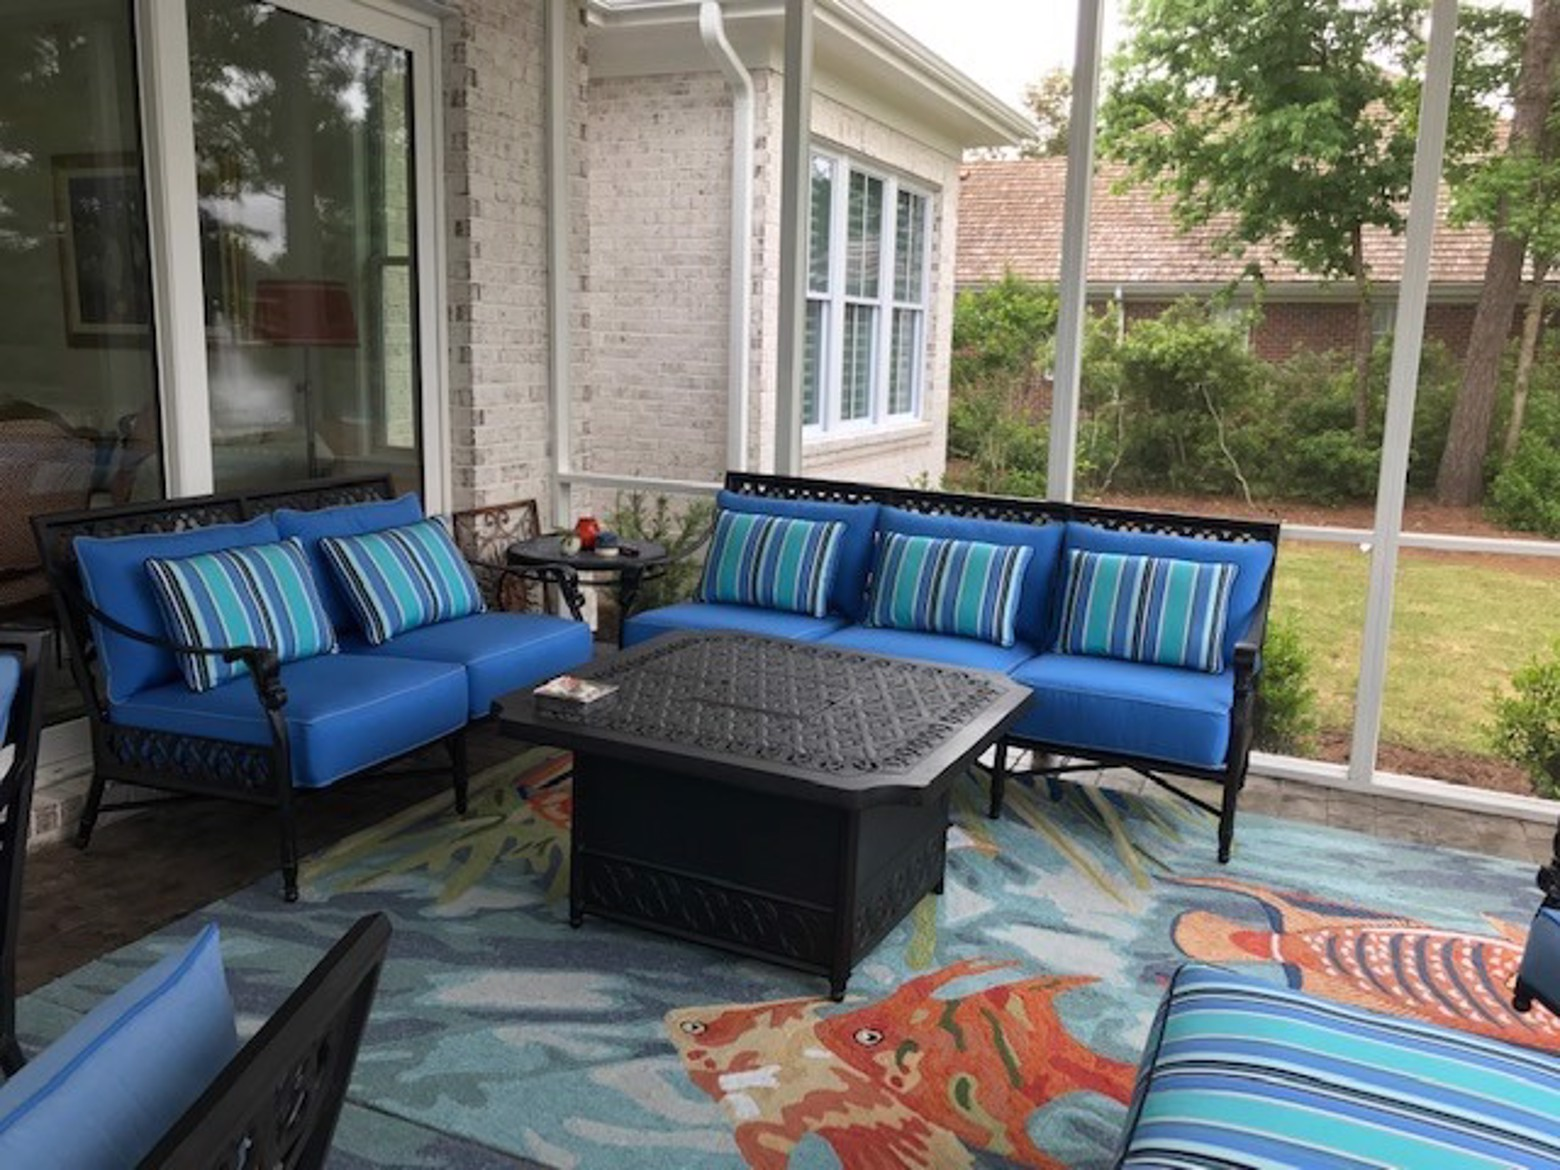 Outdoor sunroom.jpg image